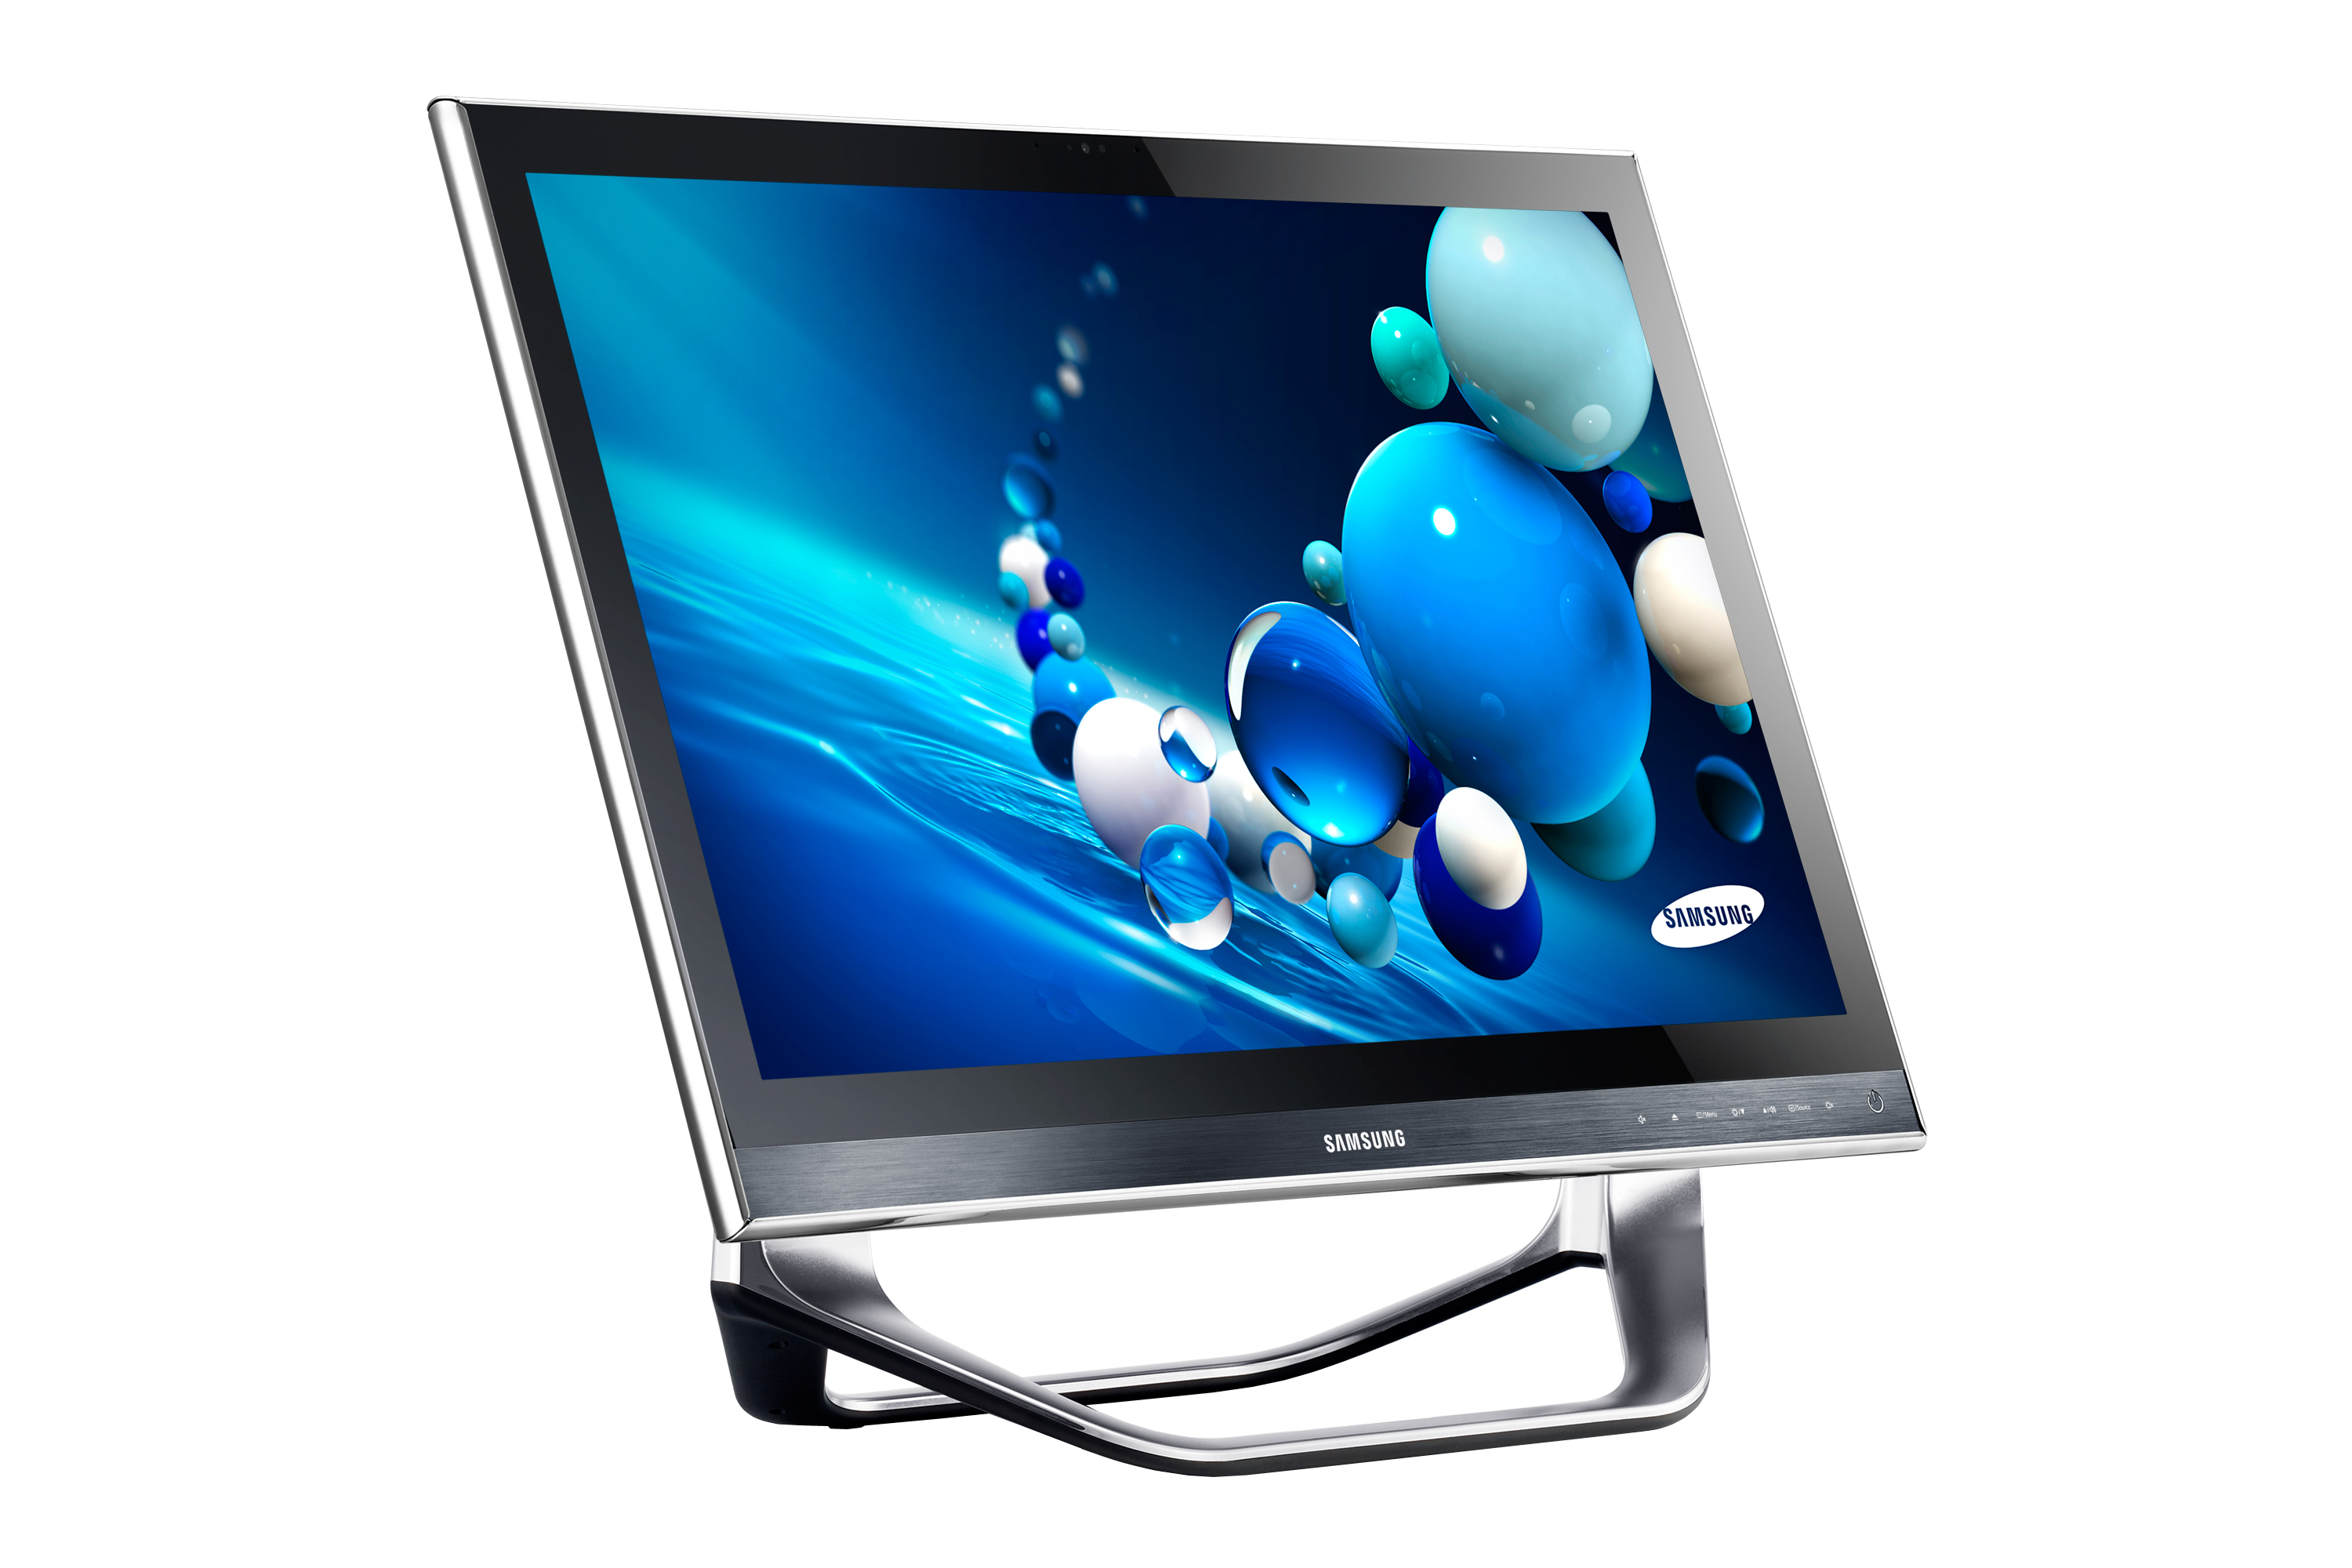 Samsung All-in-one PC Series 7